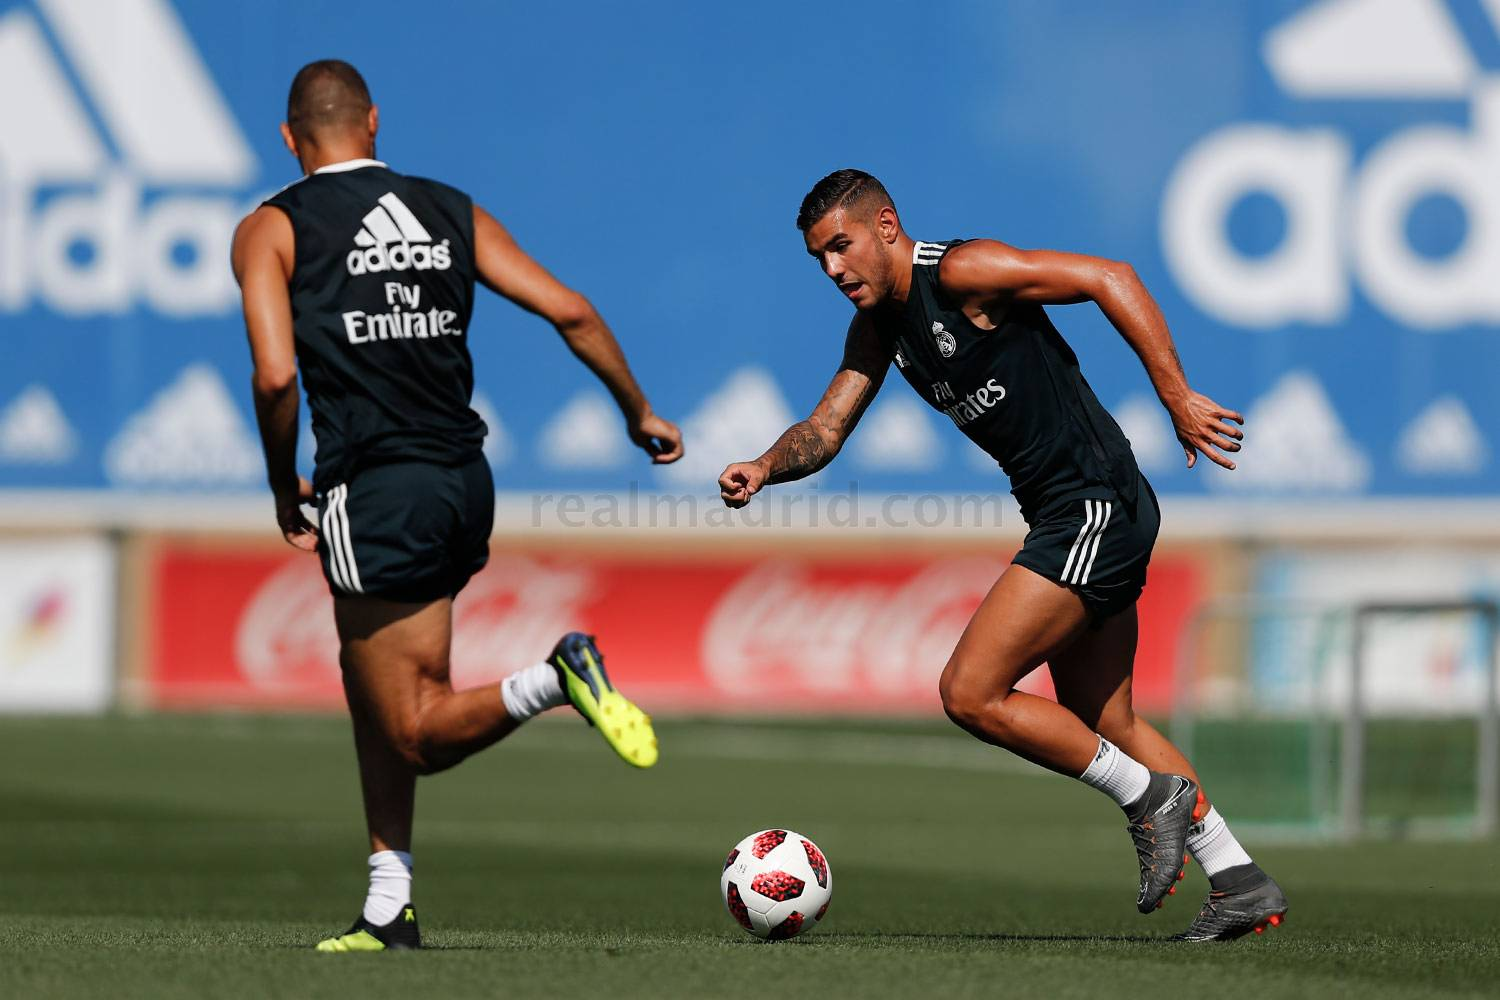 Real Madrid - Entrenamiento del Real Madrid - 23-07-2018